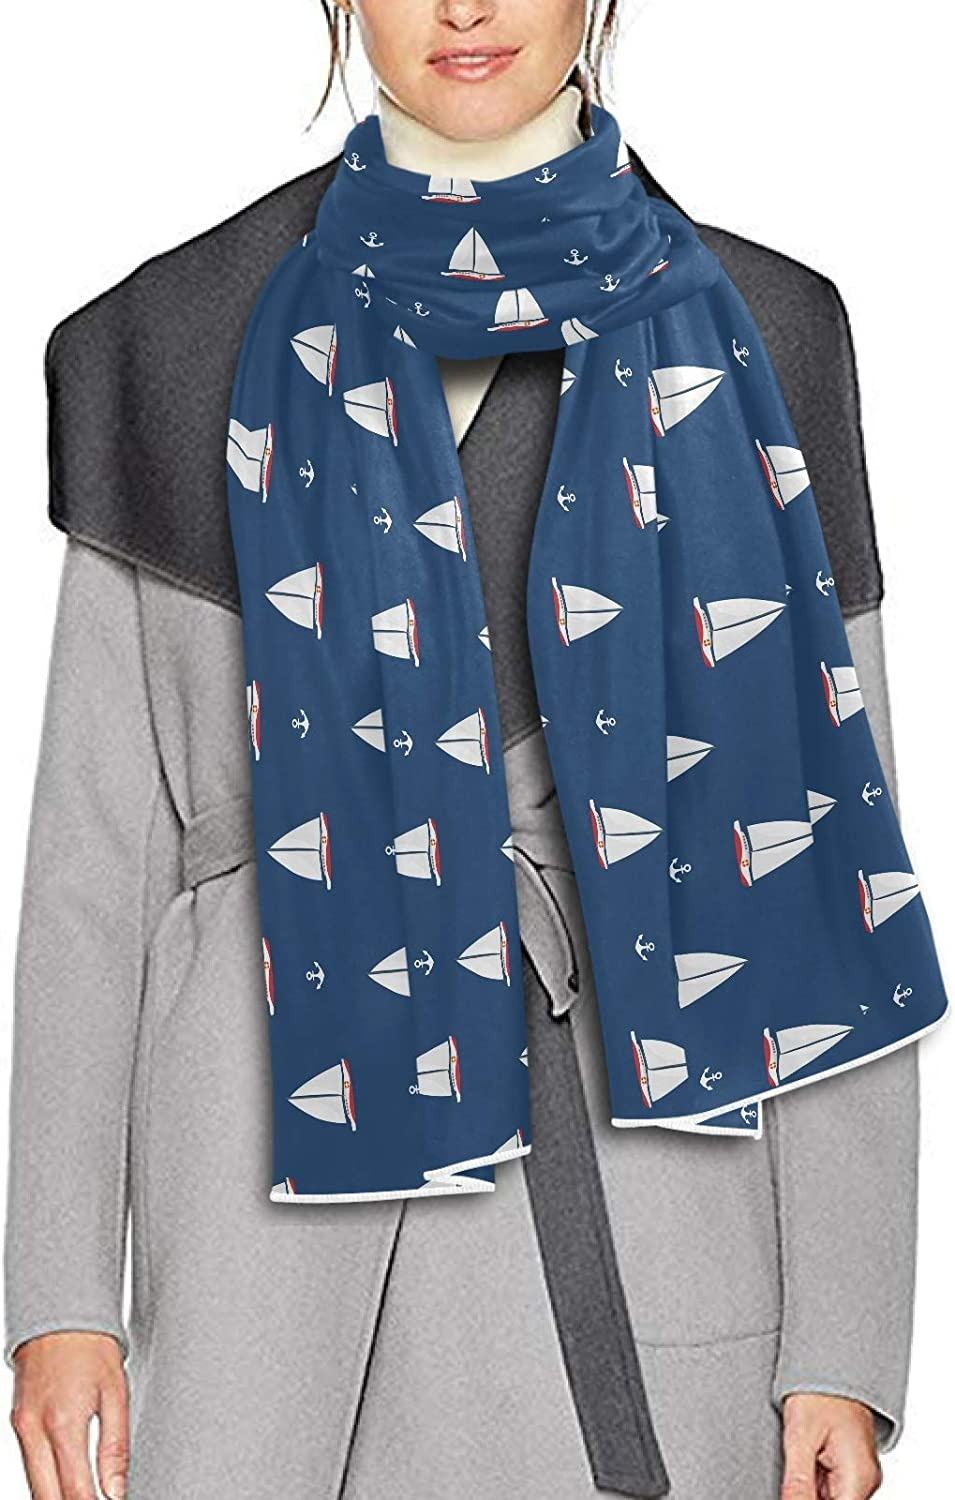 Scarf for Women and Men Sailboat Anchor Shawl Wraps Blanket Scarf Thick Soft Winter Large Scarves Lightweight